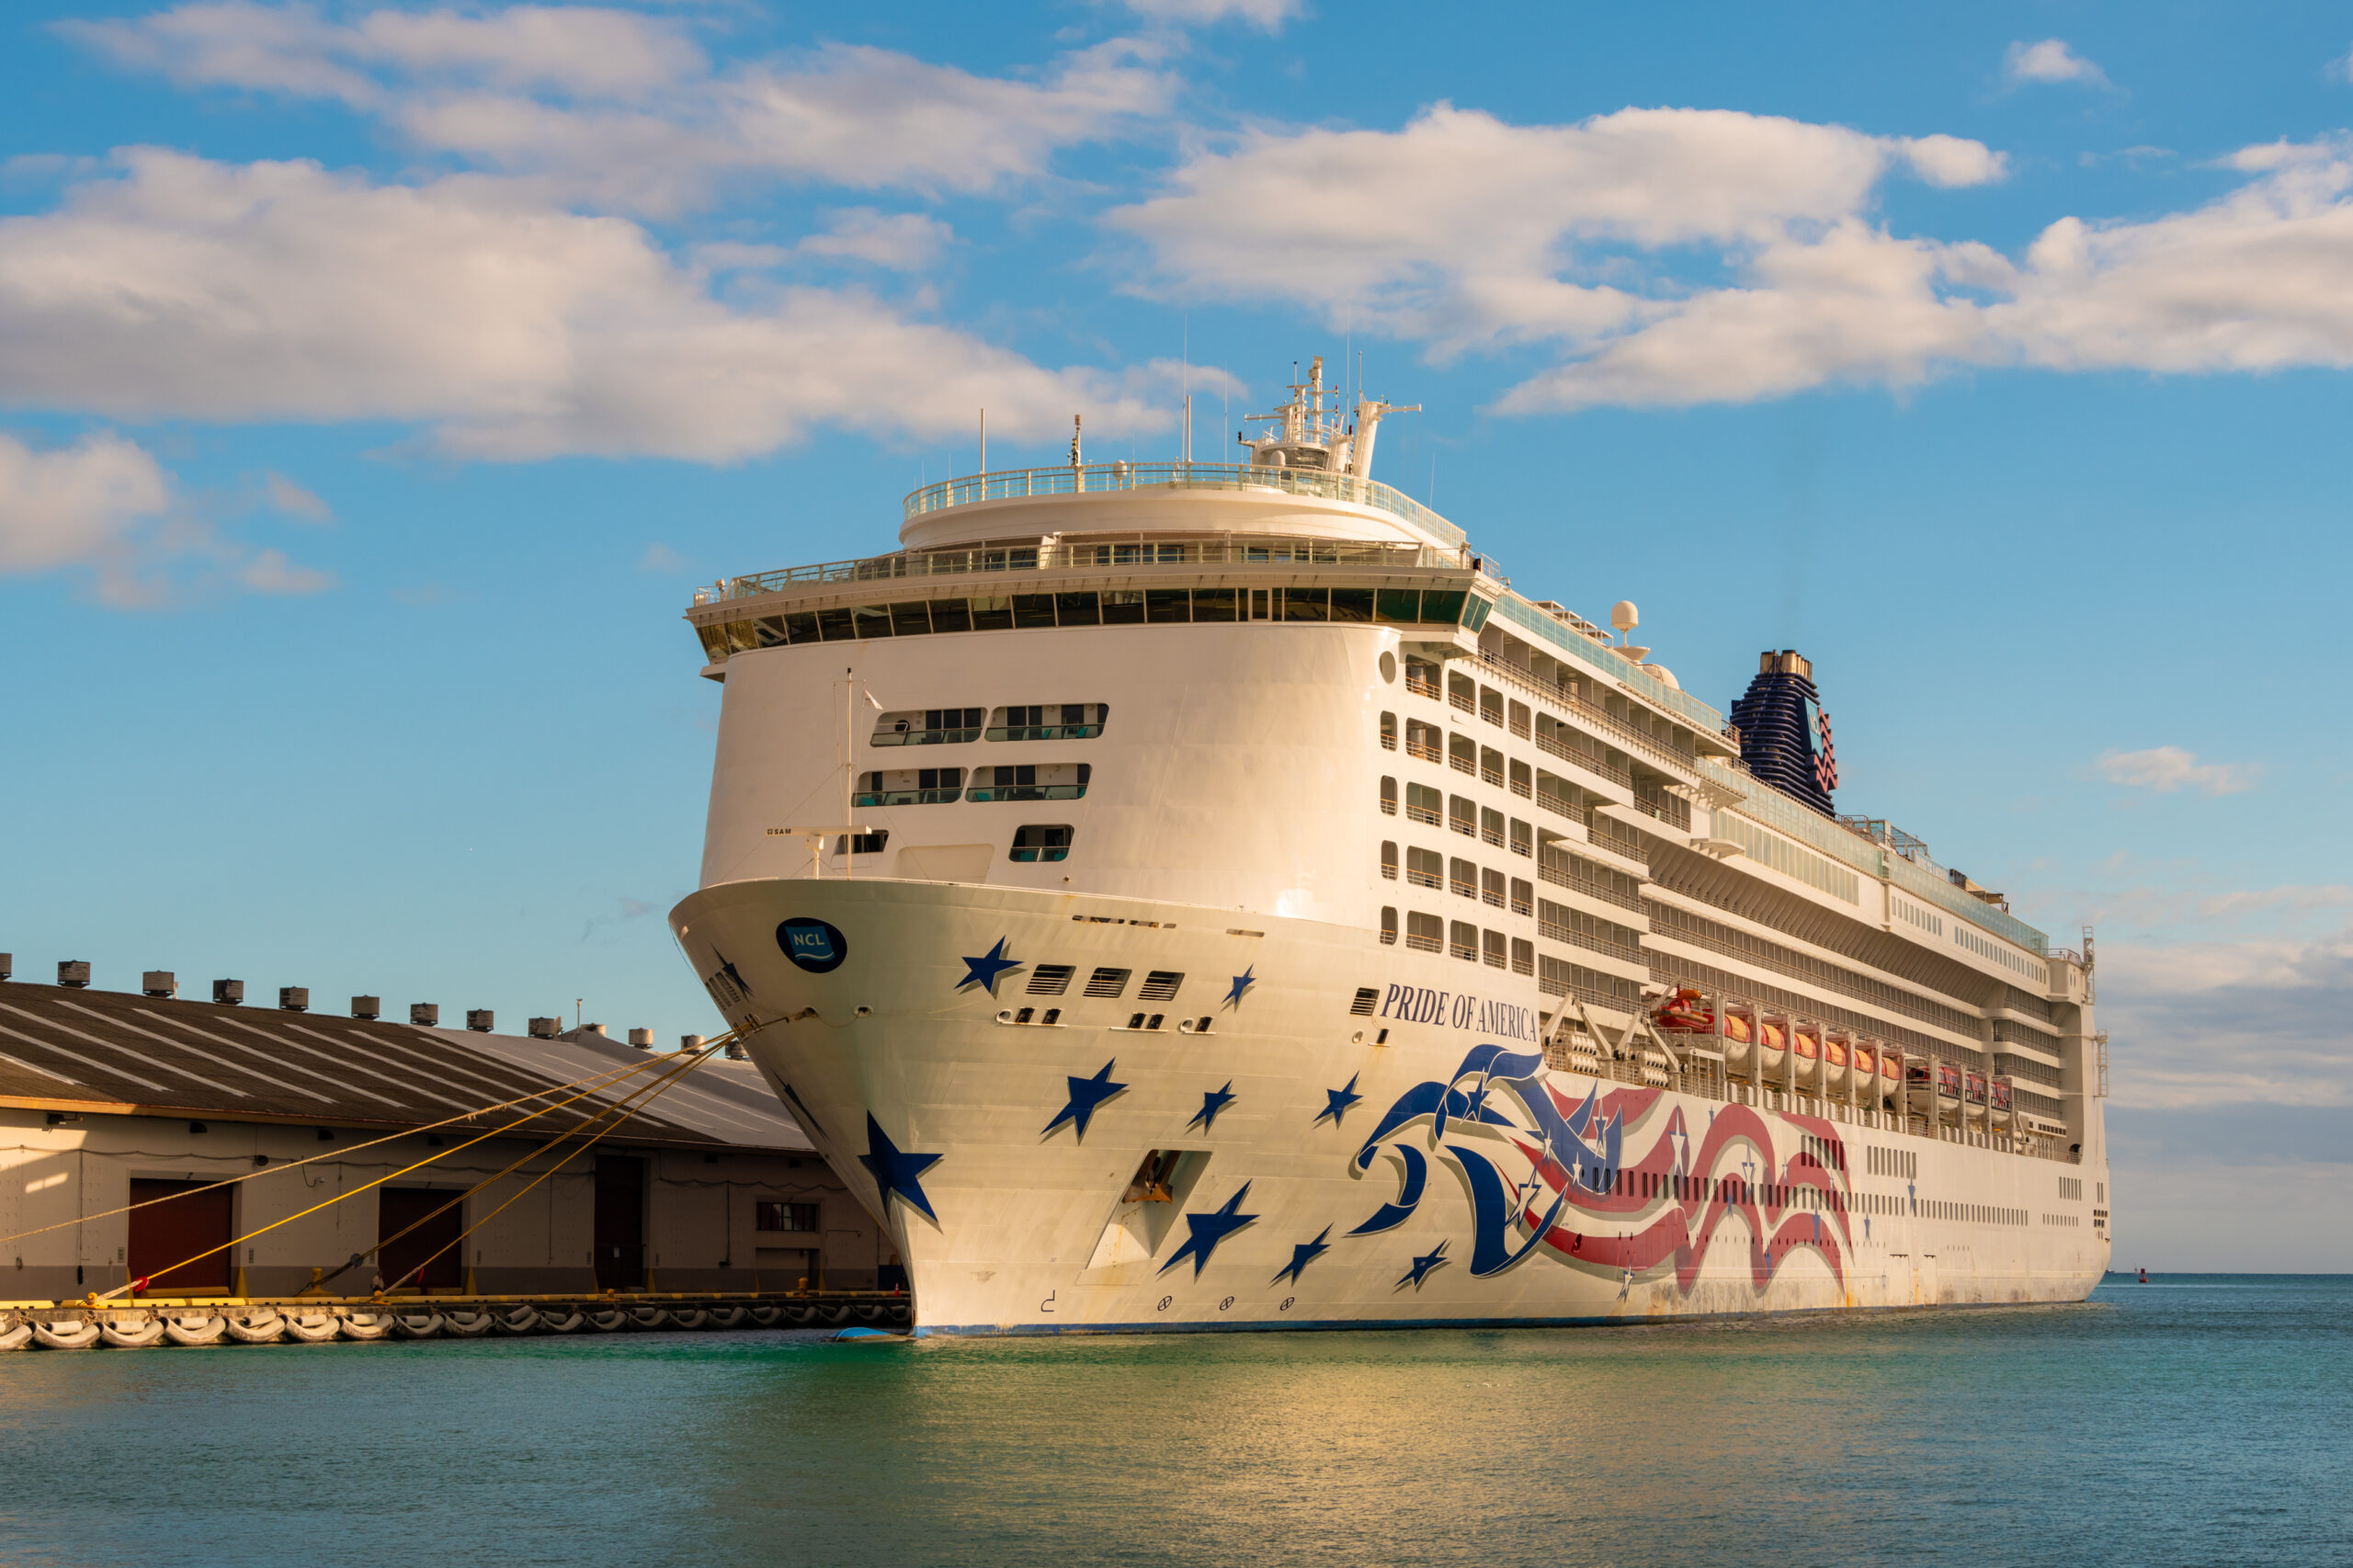 Built in the US and operated by Norwegian Cruise Lines (NCL), MS Pride of America is a cruise ship that sails around the Hawaiian Islands.